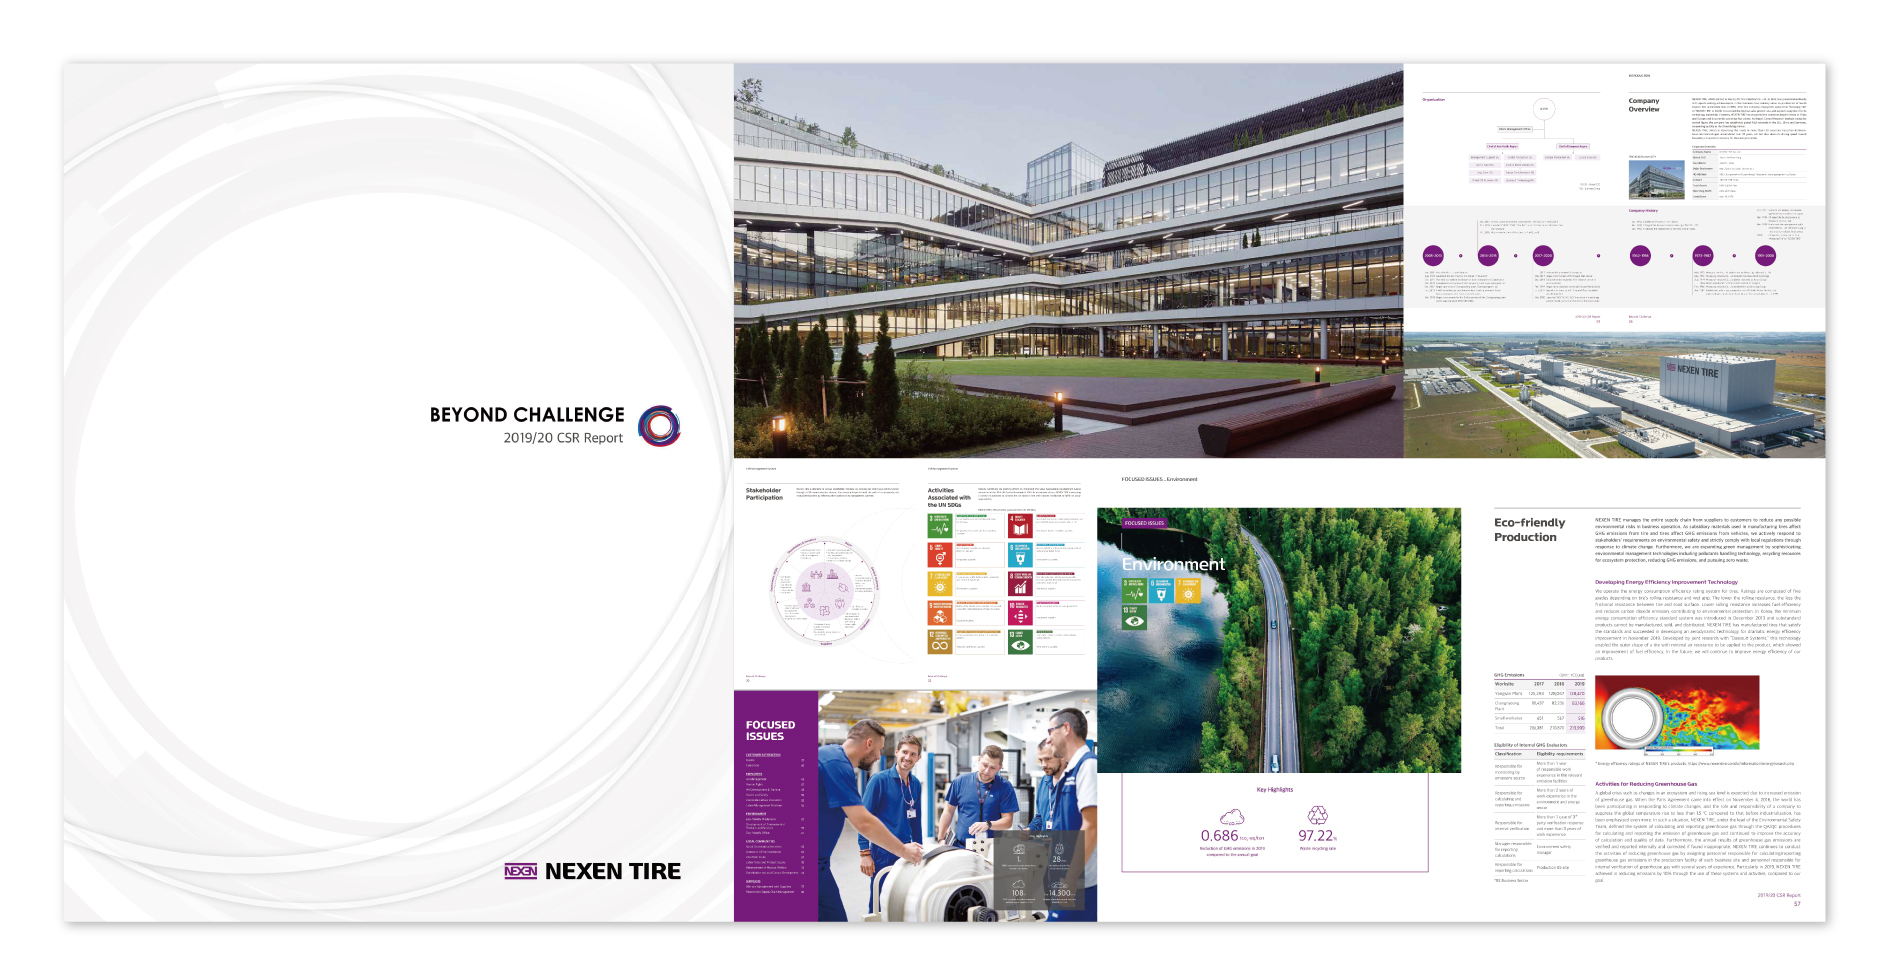 ★ Nexen Tire Releases First Sustainability Report (1)